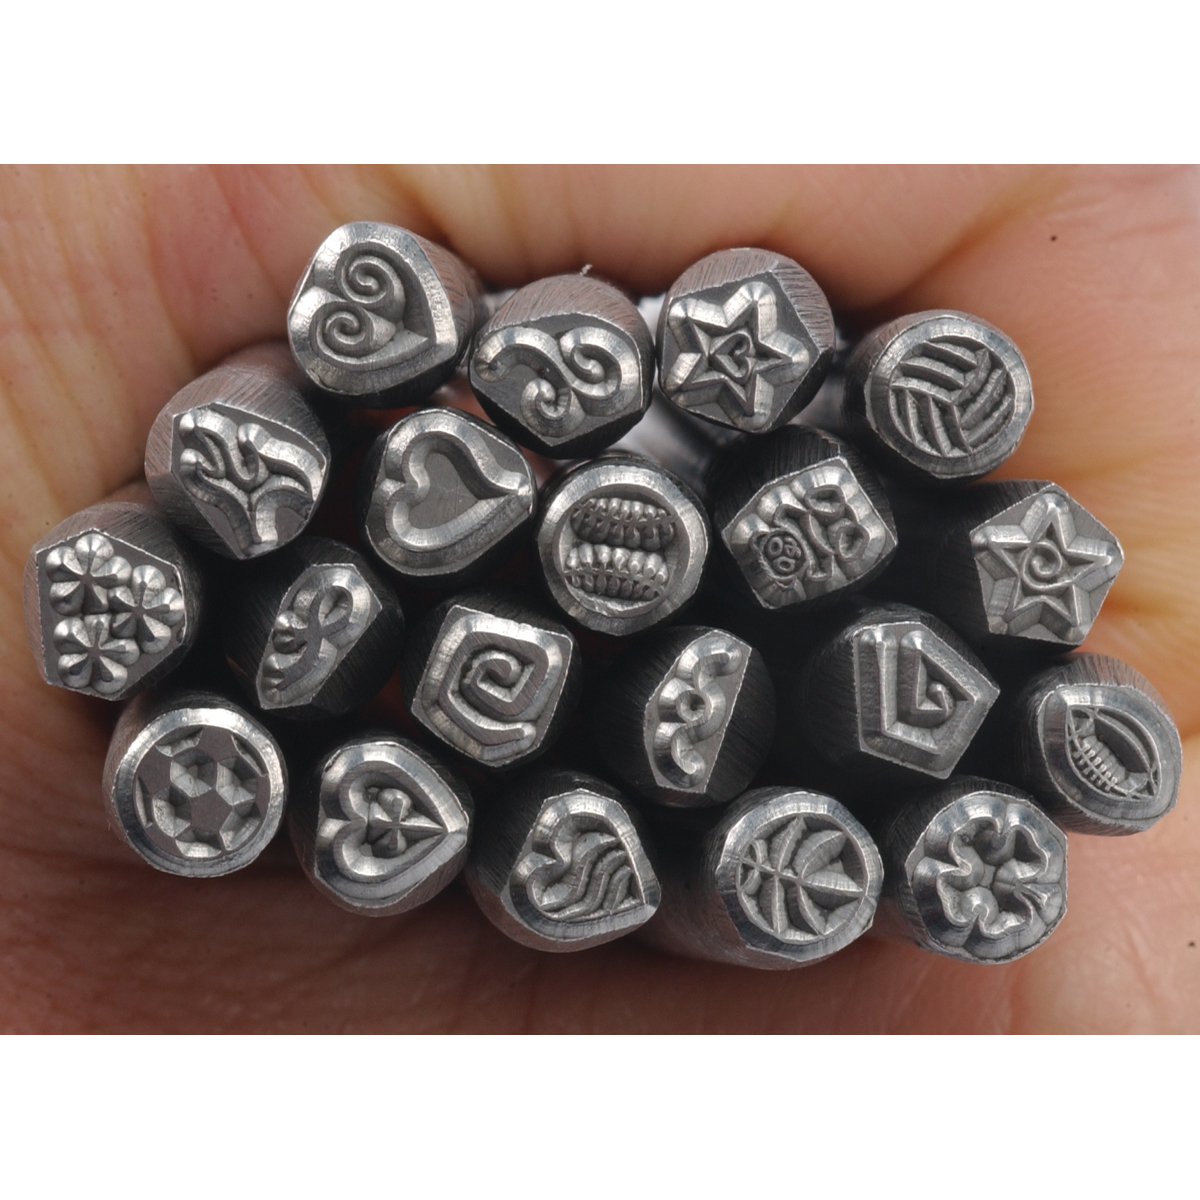 Fityle Metal Stamp Punch Set Hardened Carbon Steel Metal Stamp Design Symbol for Stamping Metal//Jewelry//Leather//Wood Platinum DIY Jewelry Making 20pcs